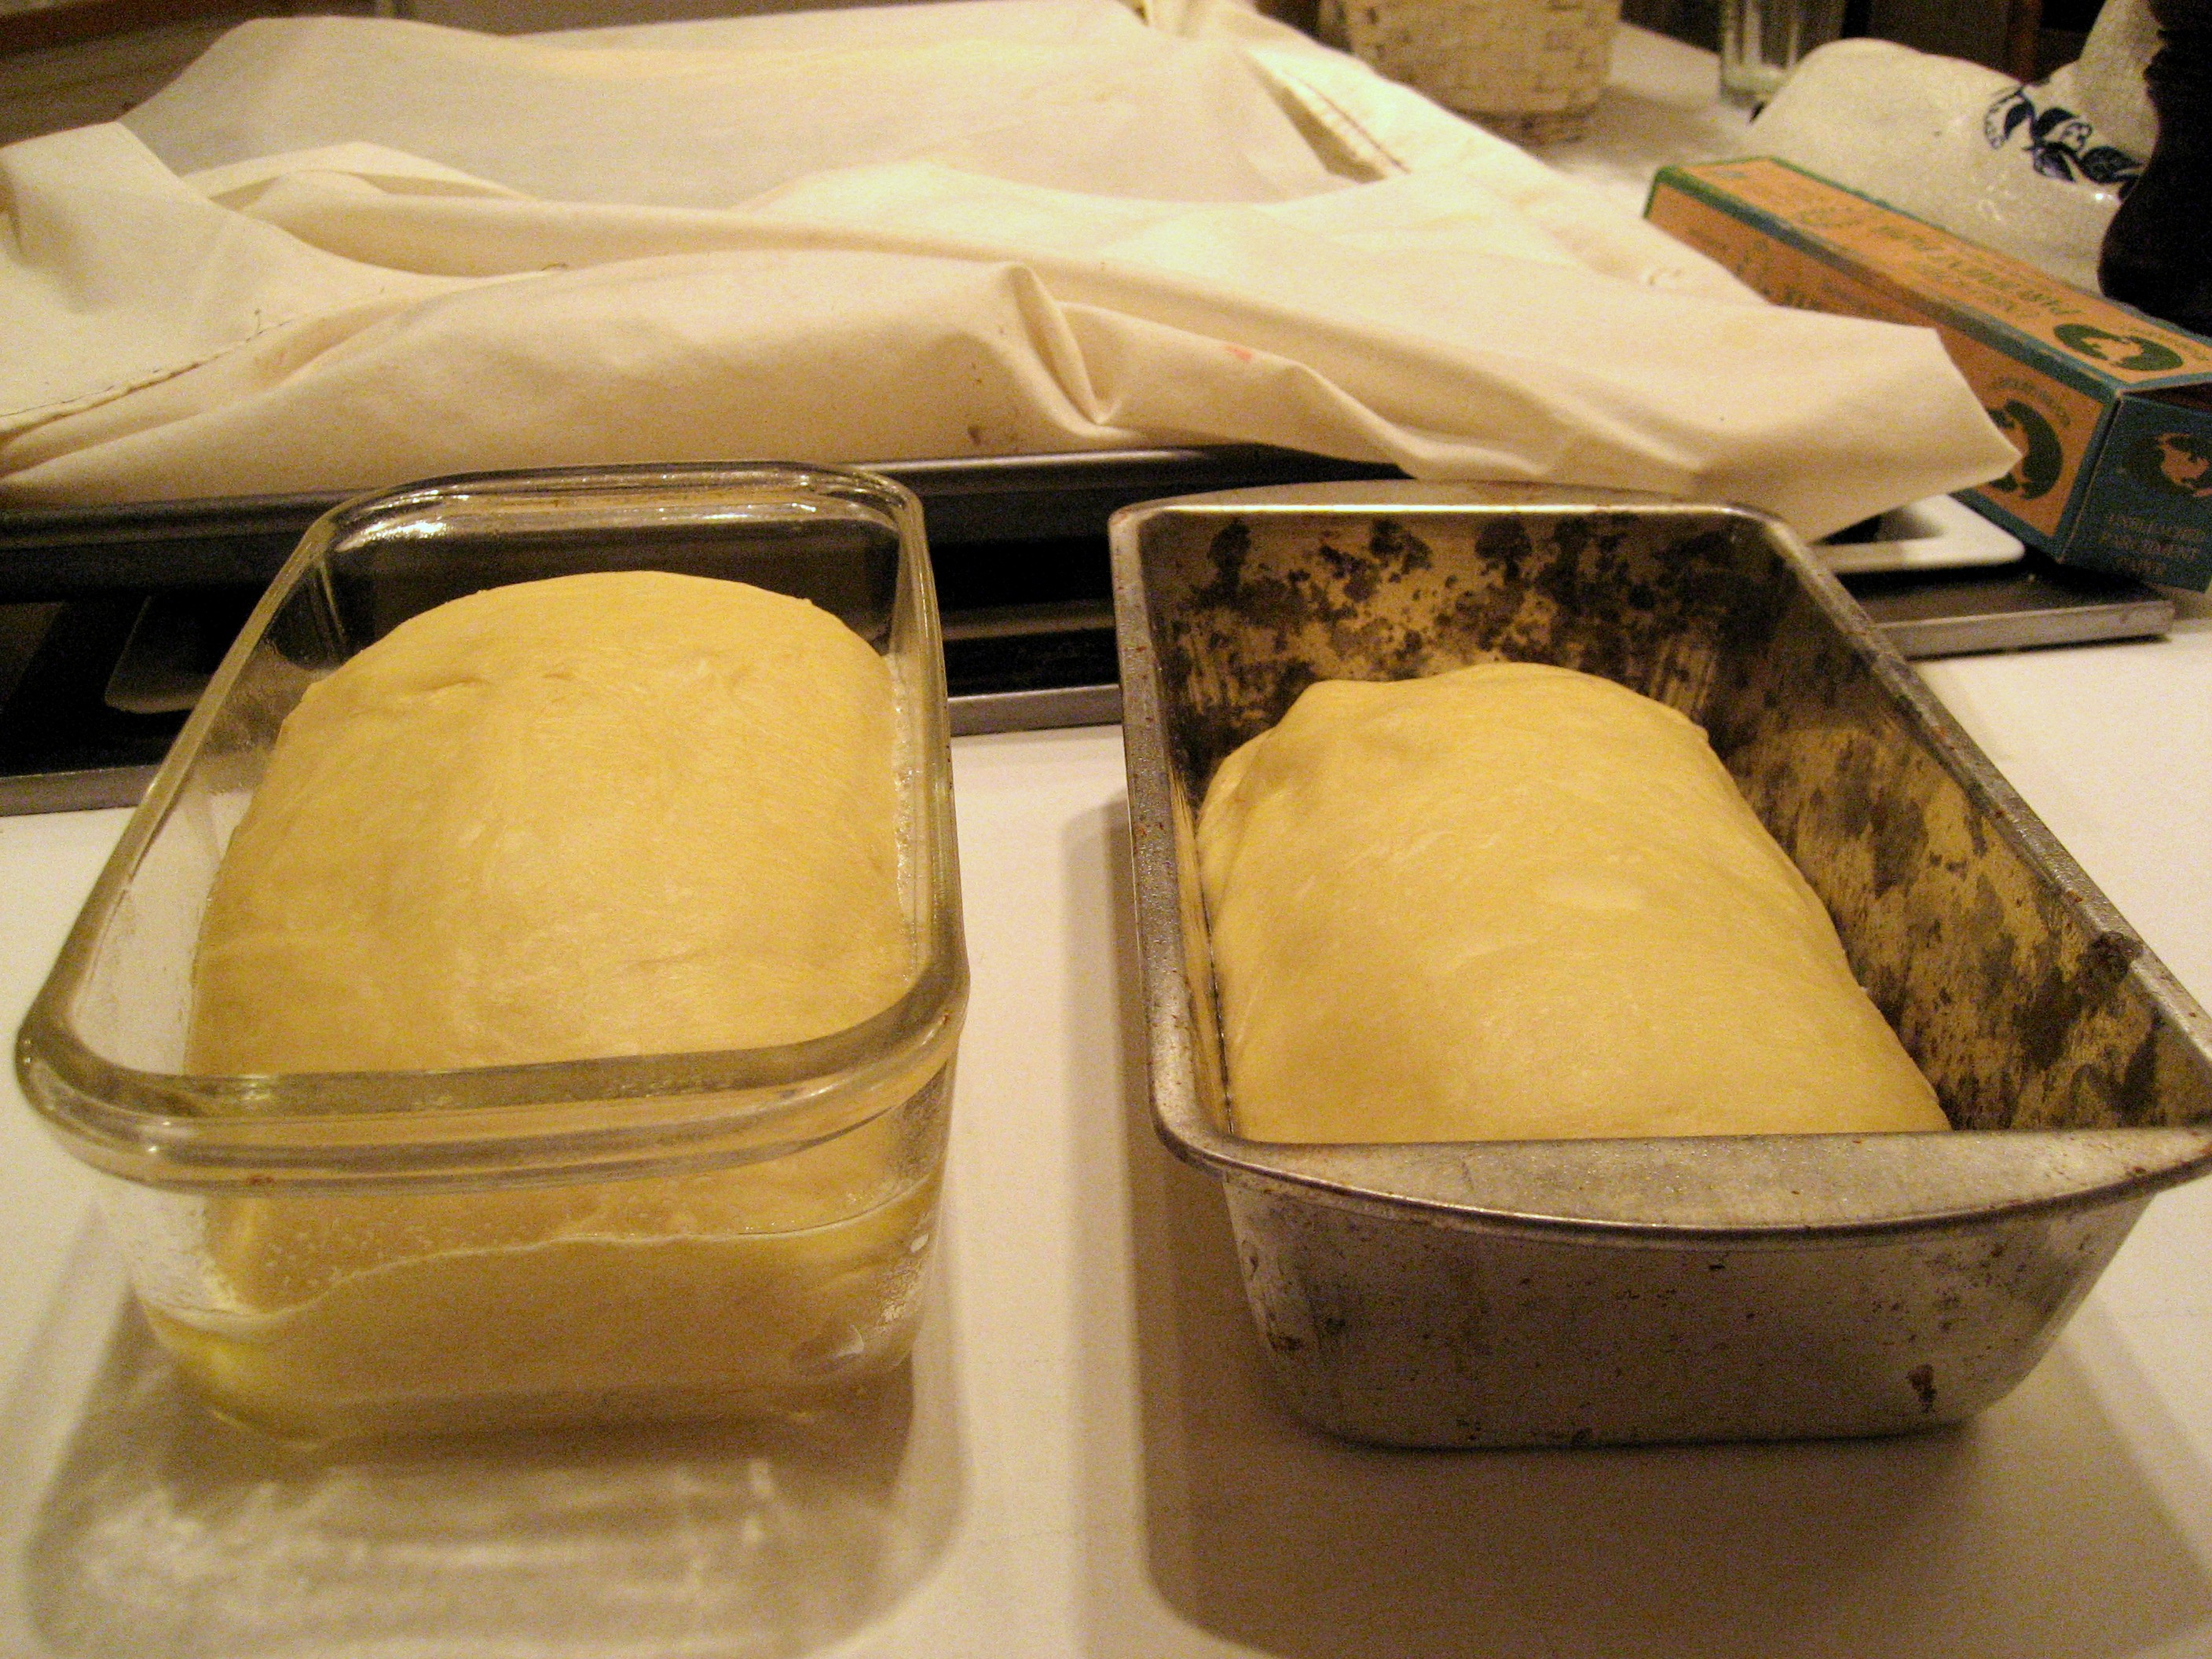 Using Your Oven To Bake Your Own Bread